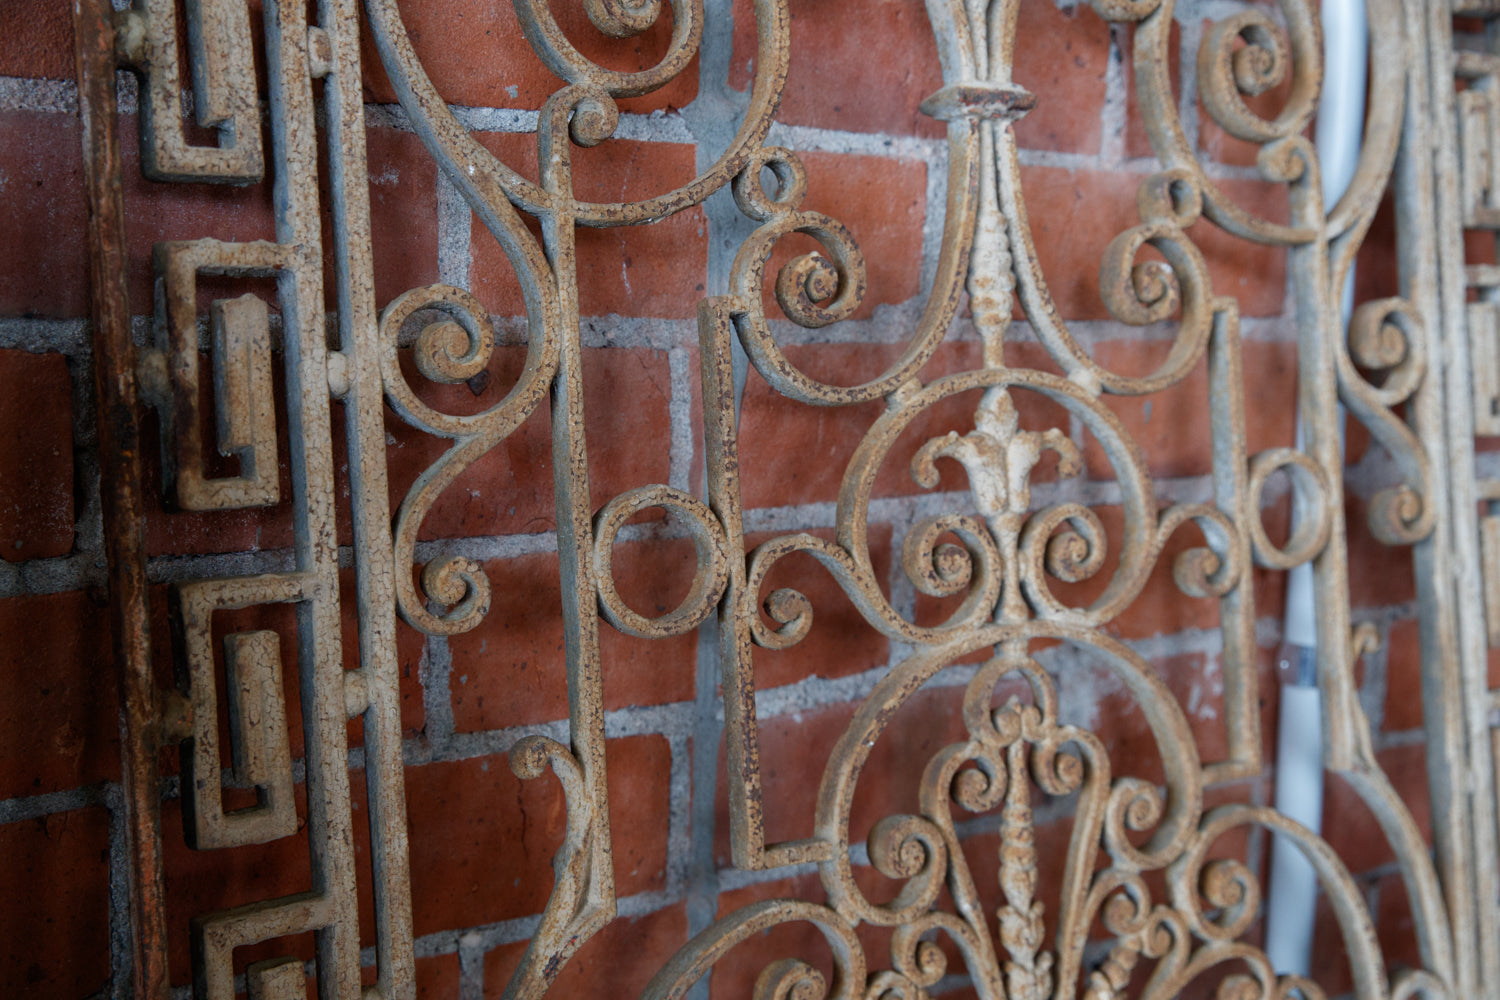 19th Century French Wrought Iron Grills